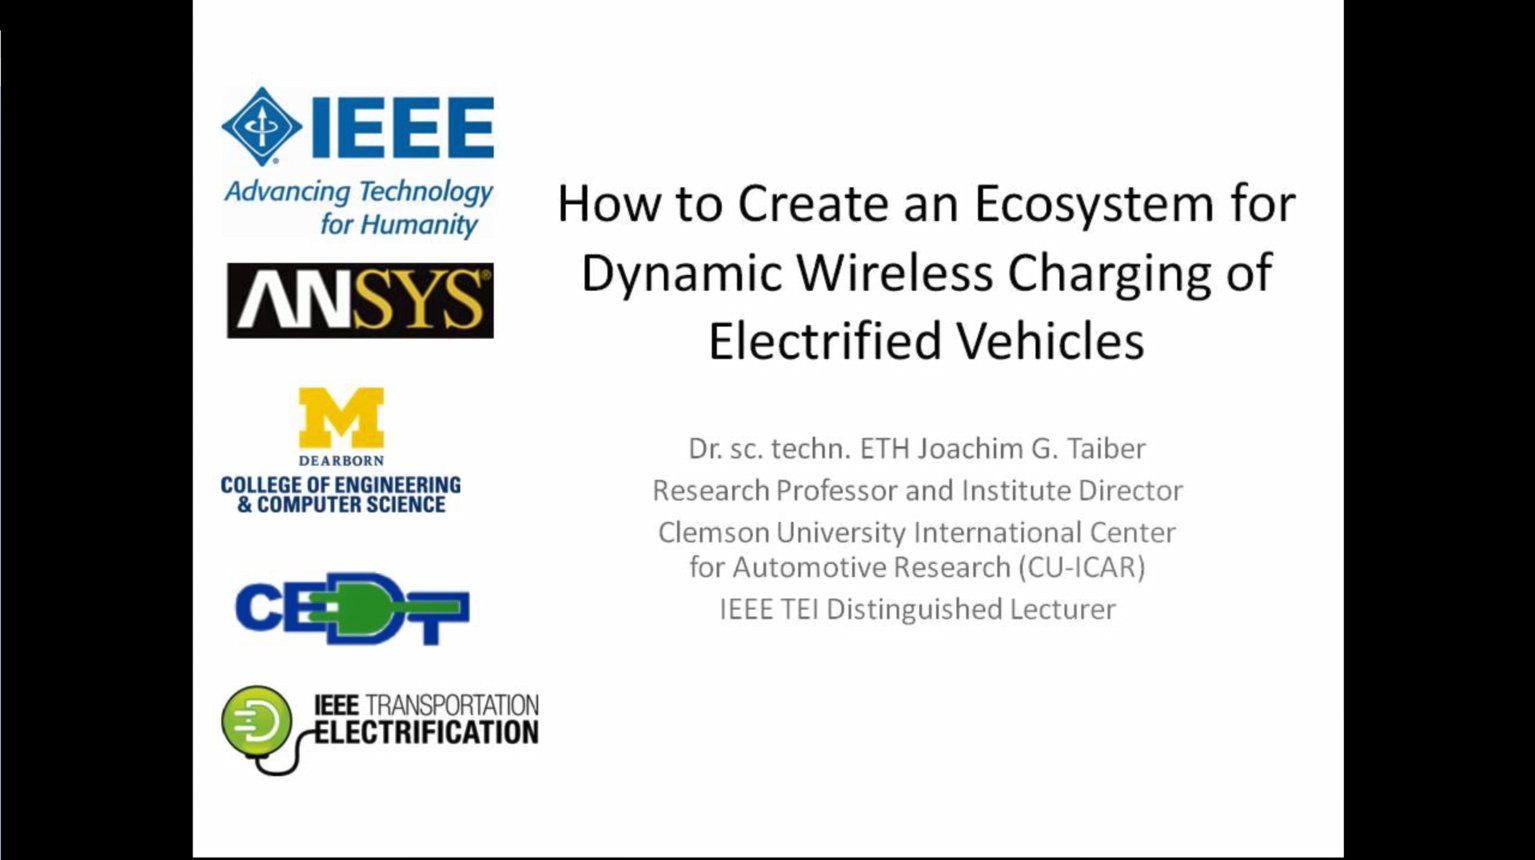 How to Create an Ecosystem for Dynamic Wireless Charging of Electrified Vehicles